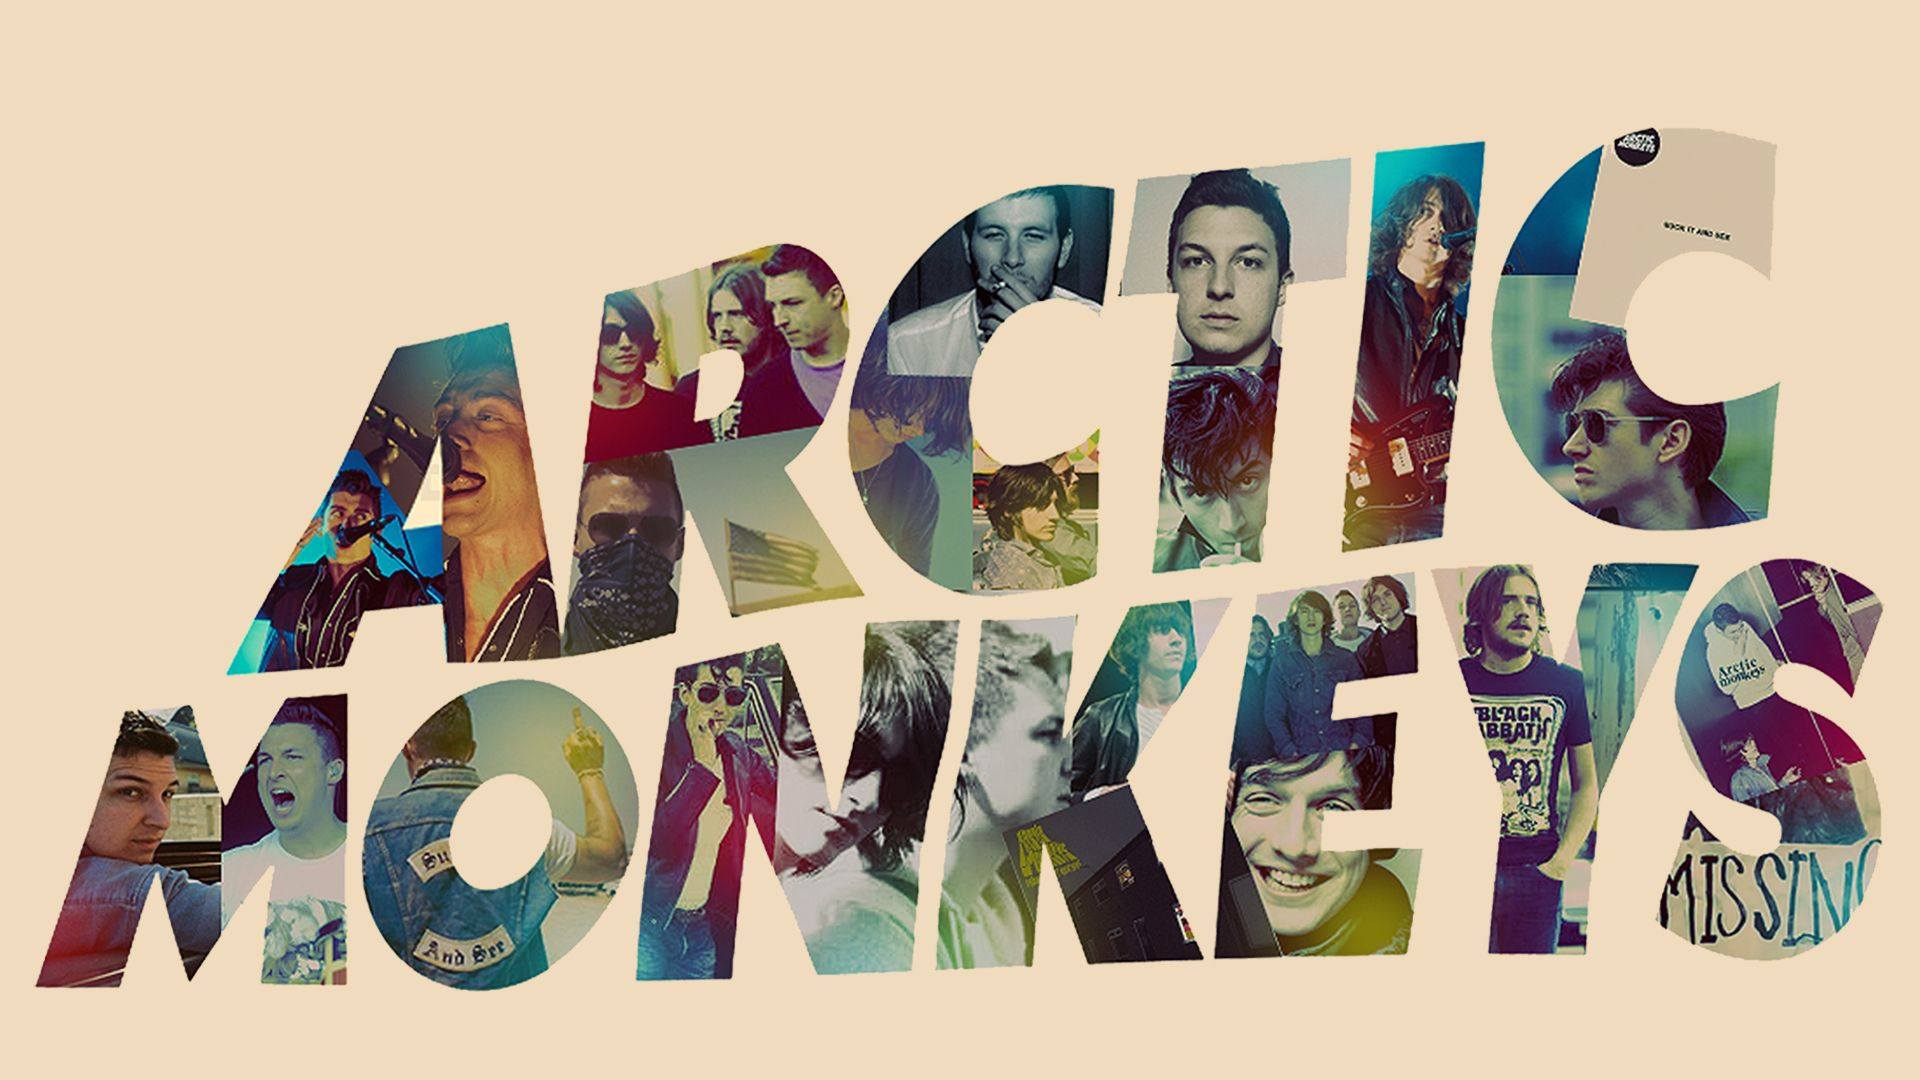 22 Arctic Monkeys Hd Wallpapers Backgrounds Wallpaper Abyss